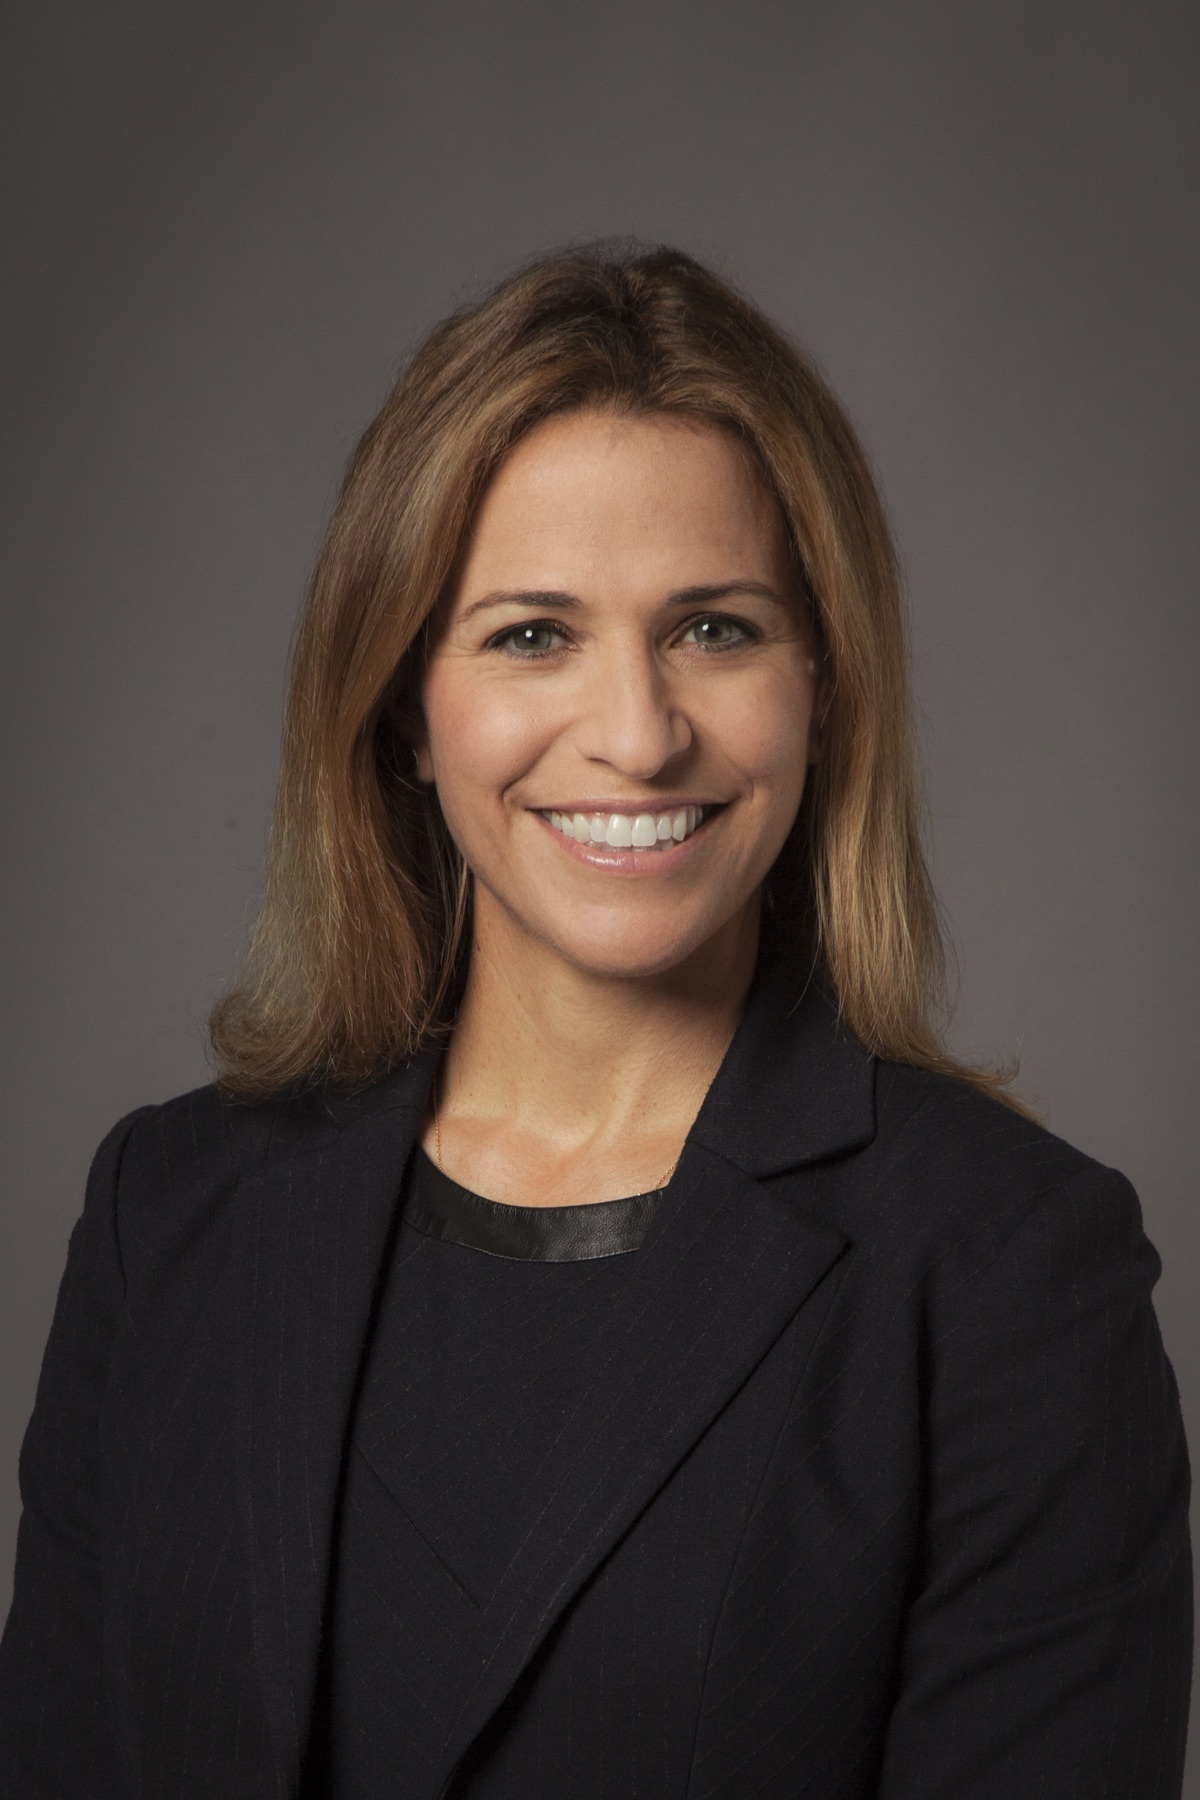 Putnam Investments Names Anicia Mendez to Lead Consultant Relations Efforts in Western U.S. (Photo: Business Wire)